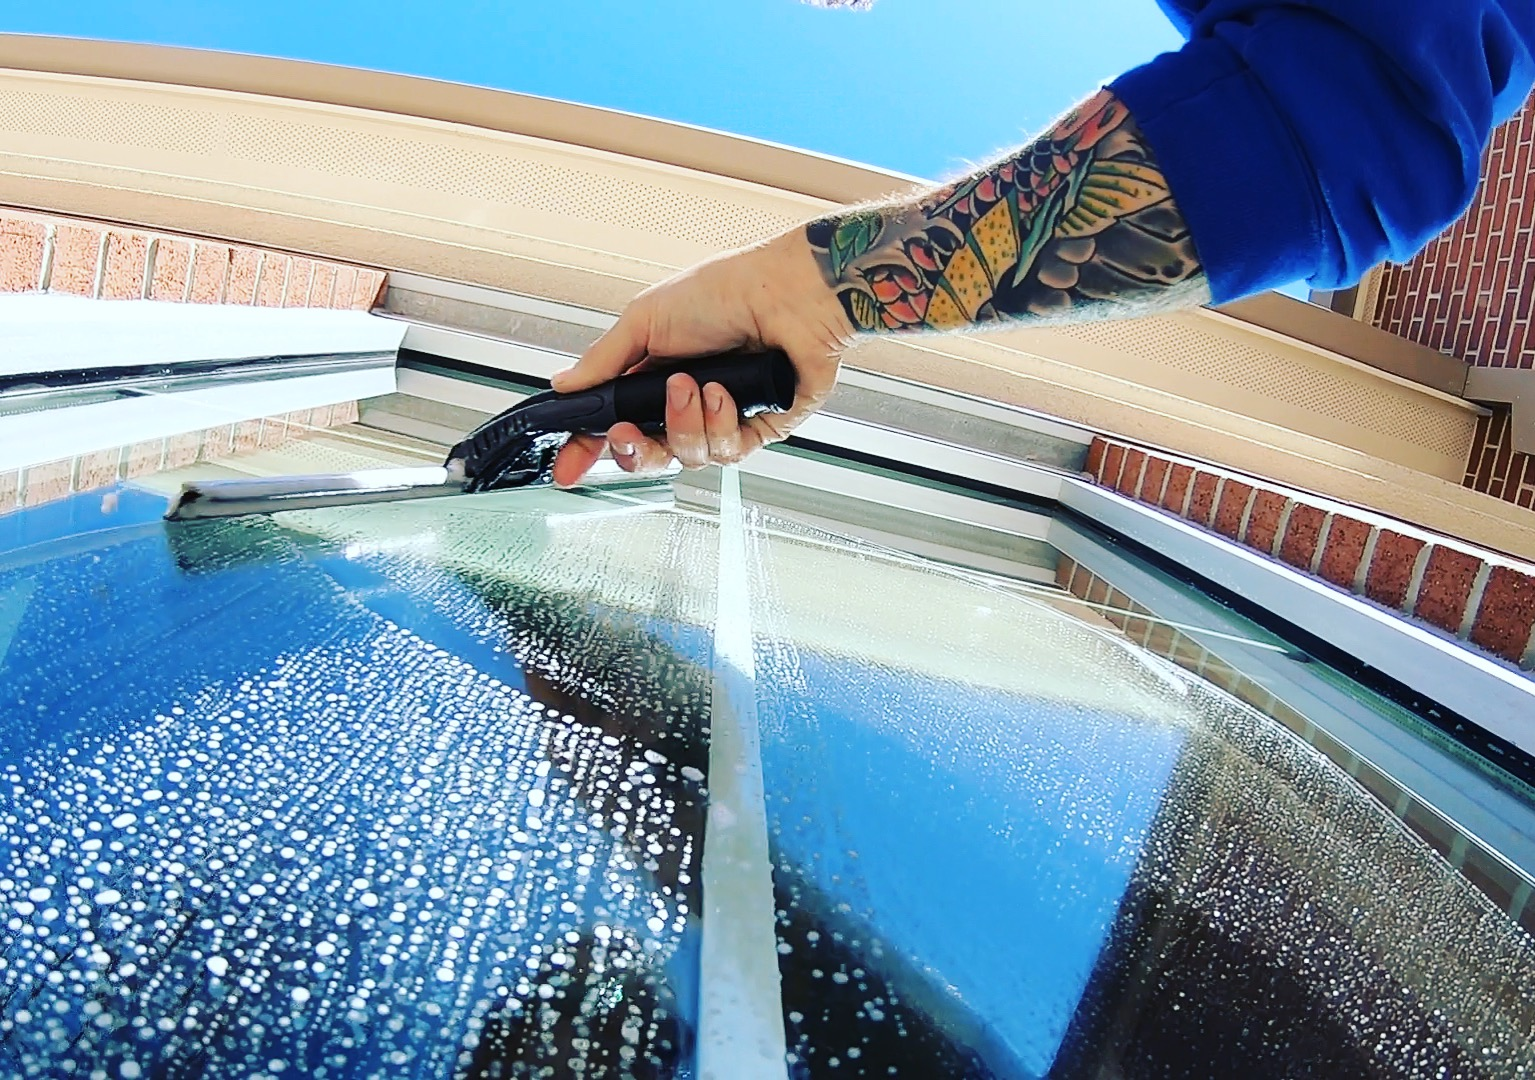 Exterior residential window clean.